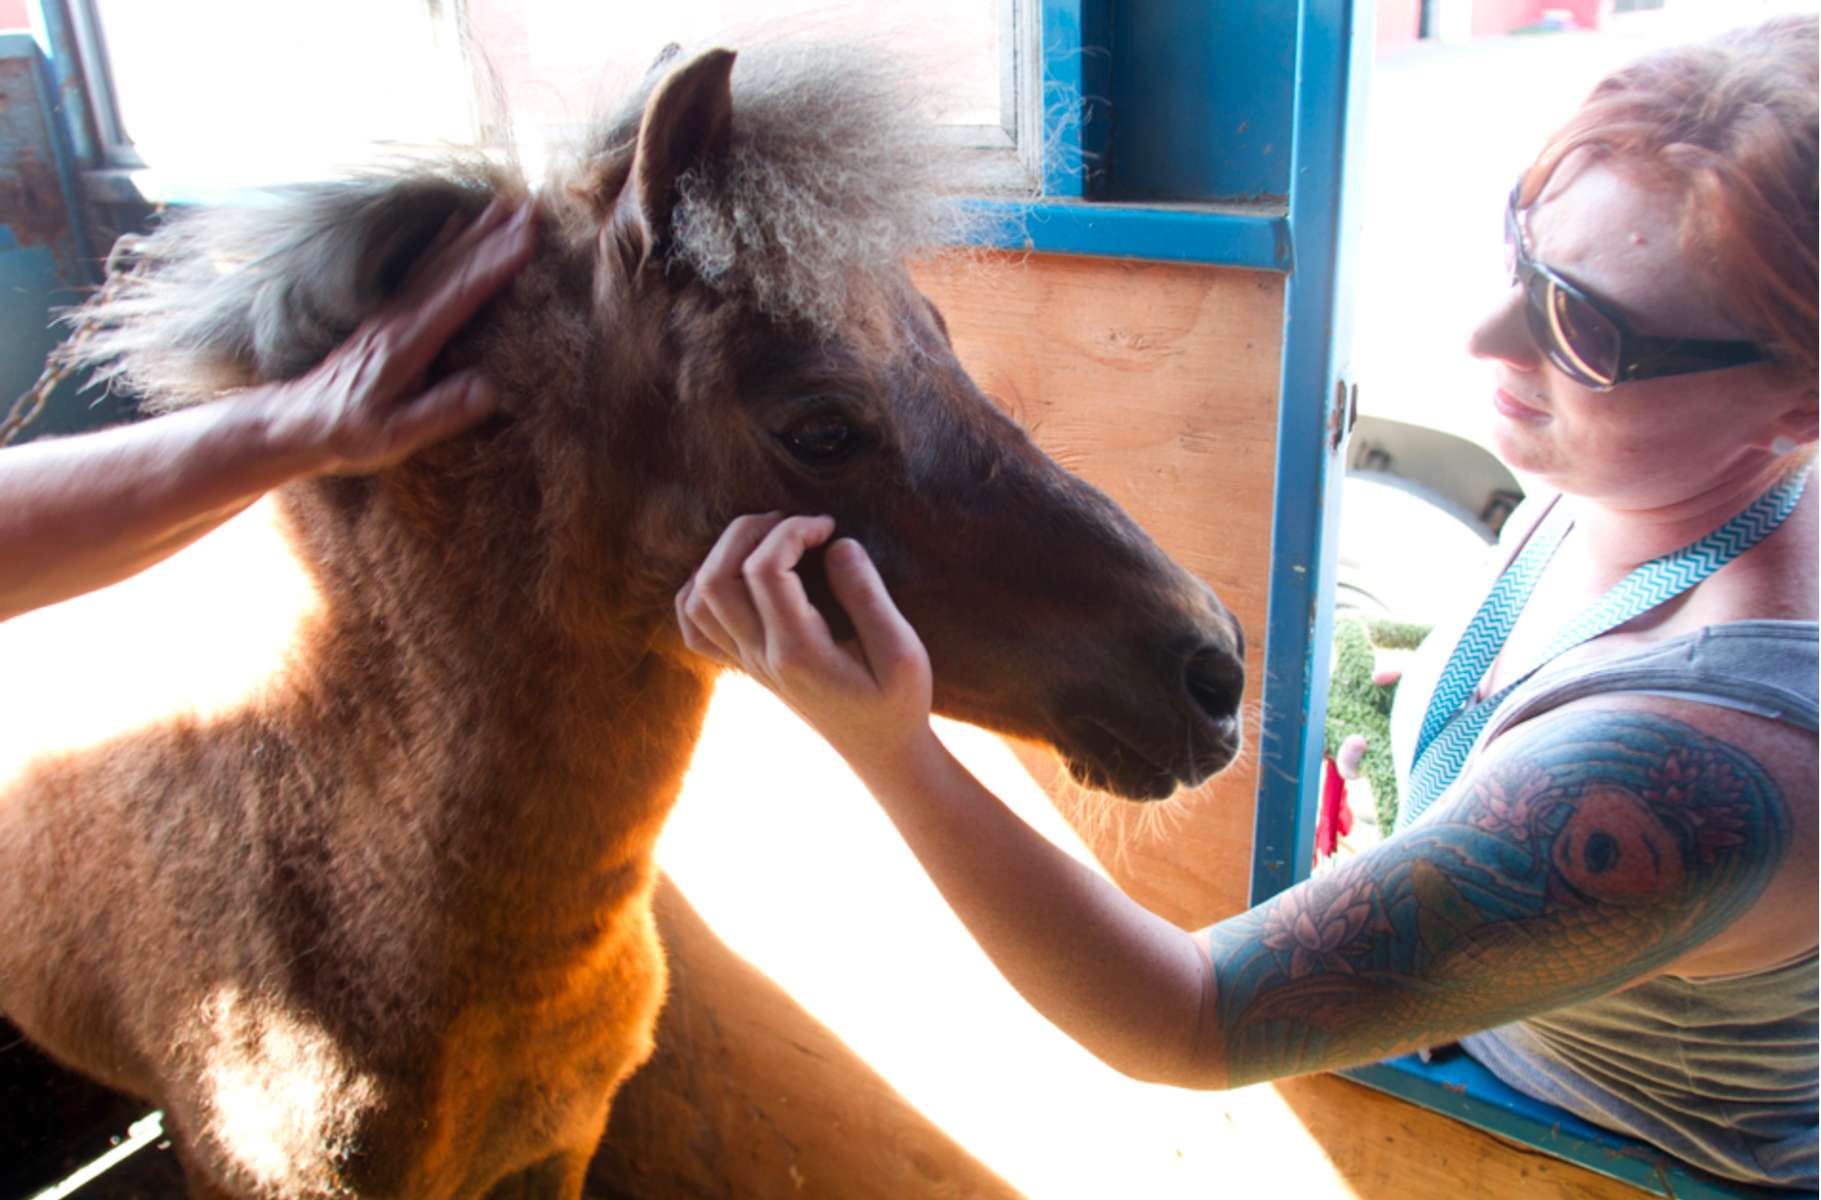 Rescue Pony Auctioned for a Pretty Penny, Writer and Photographer.  published on Animal News Northwest. This story was used by state legislator Rep. Michelle Caldier to change the laws for rescued animals in Washington state (House bill 2500). It also won first place won a first place writing award in the daily print and online small publication category for short feature story in the Excellence in Journalism awards.